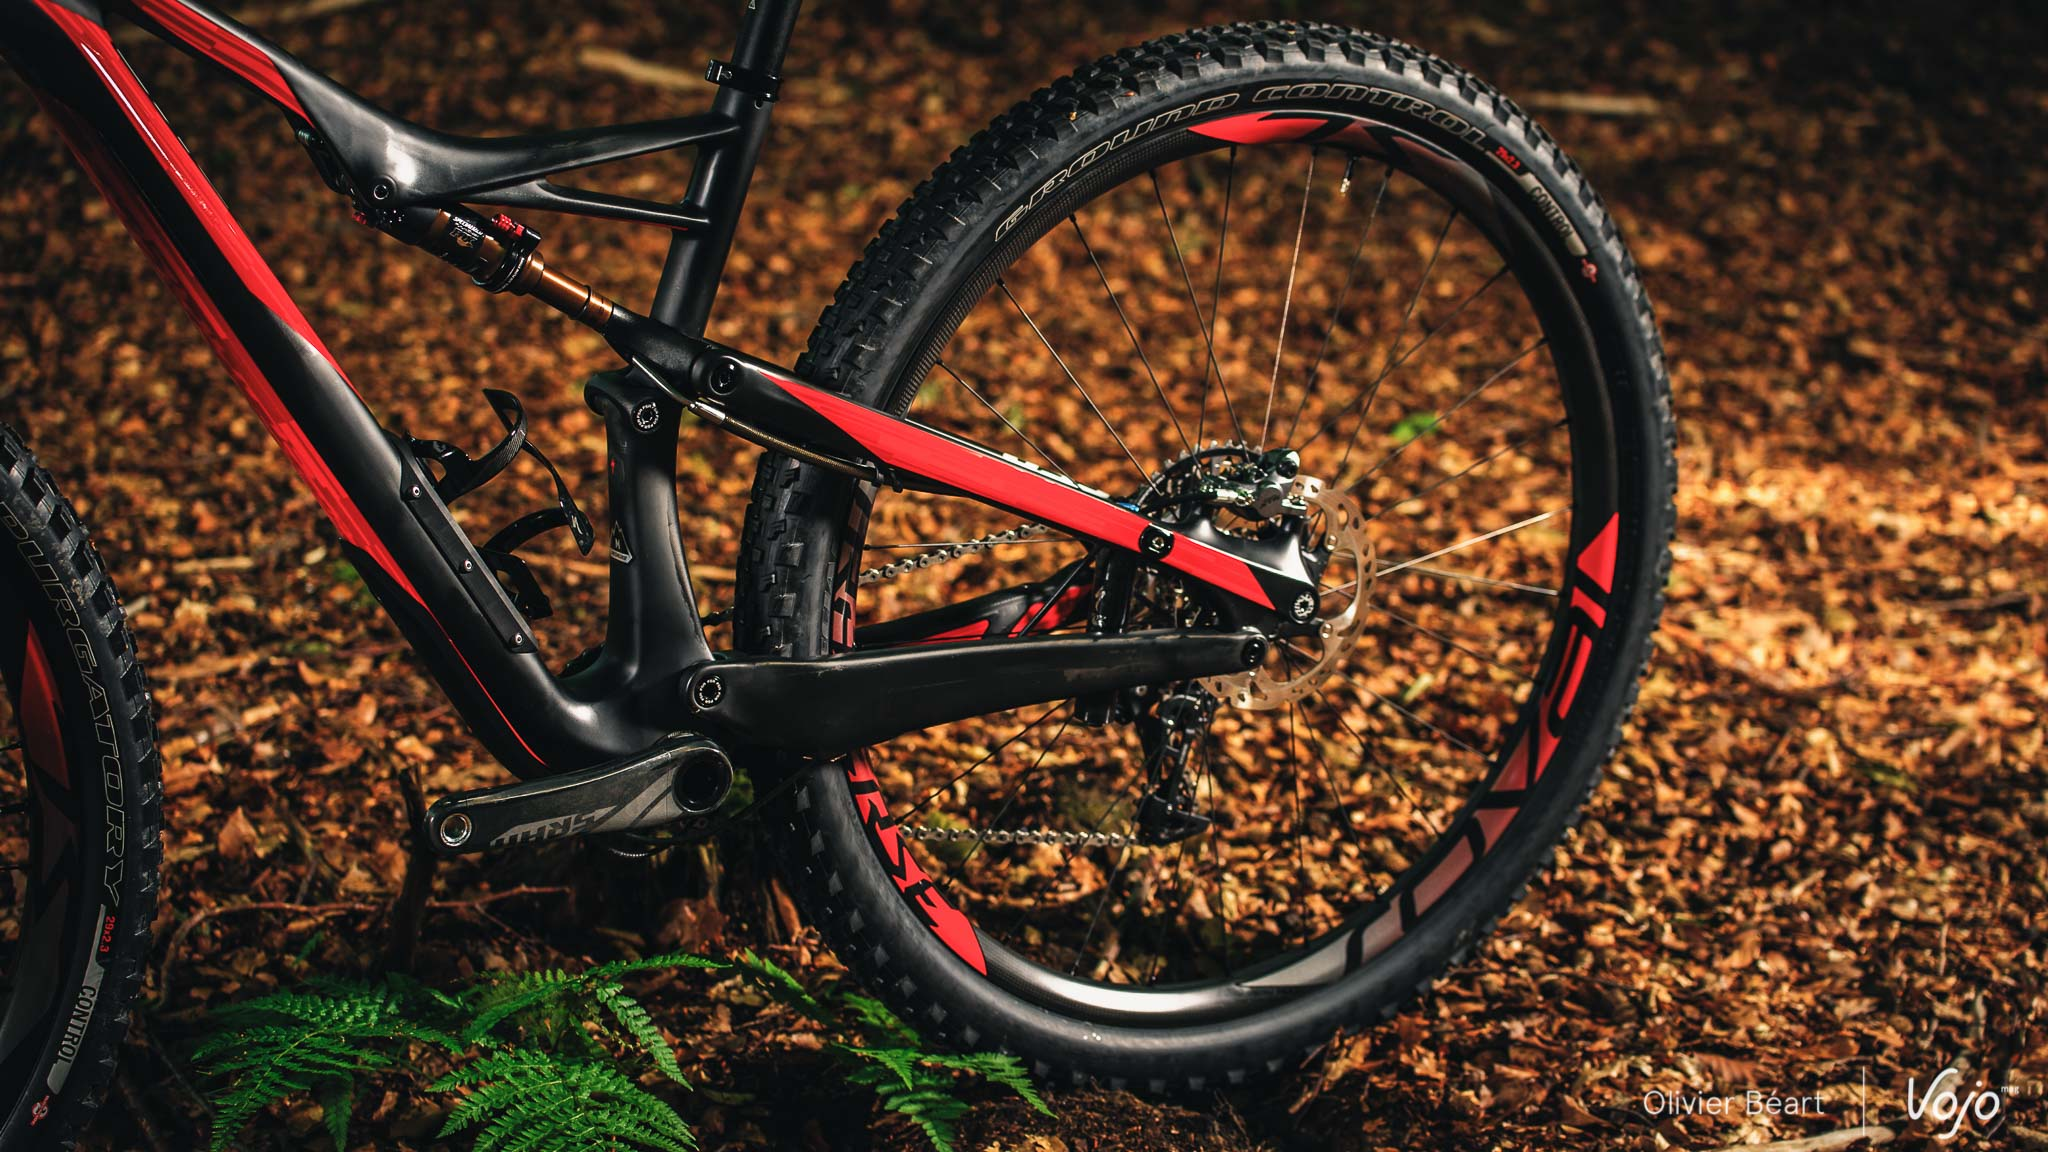 Specialized_Camber_2016_Presentation_Test_Copyright_OBeart_VojoMag-1-12